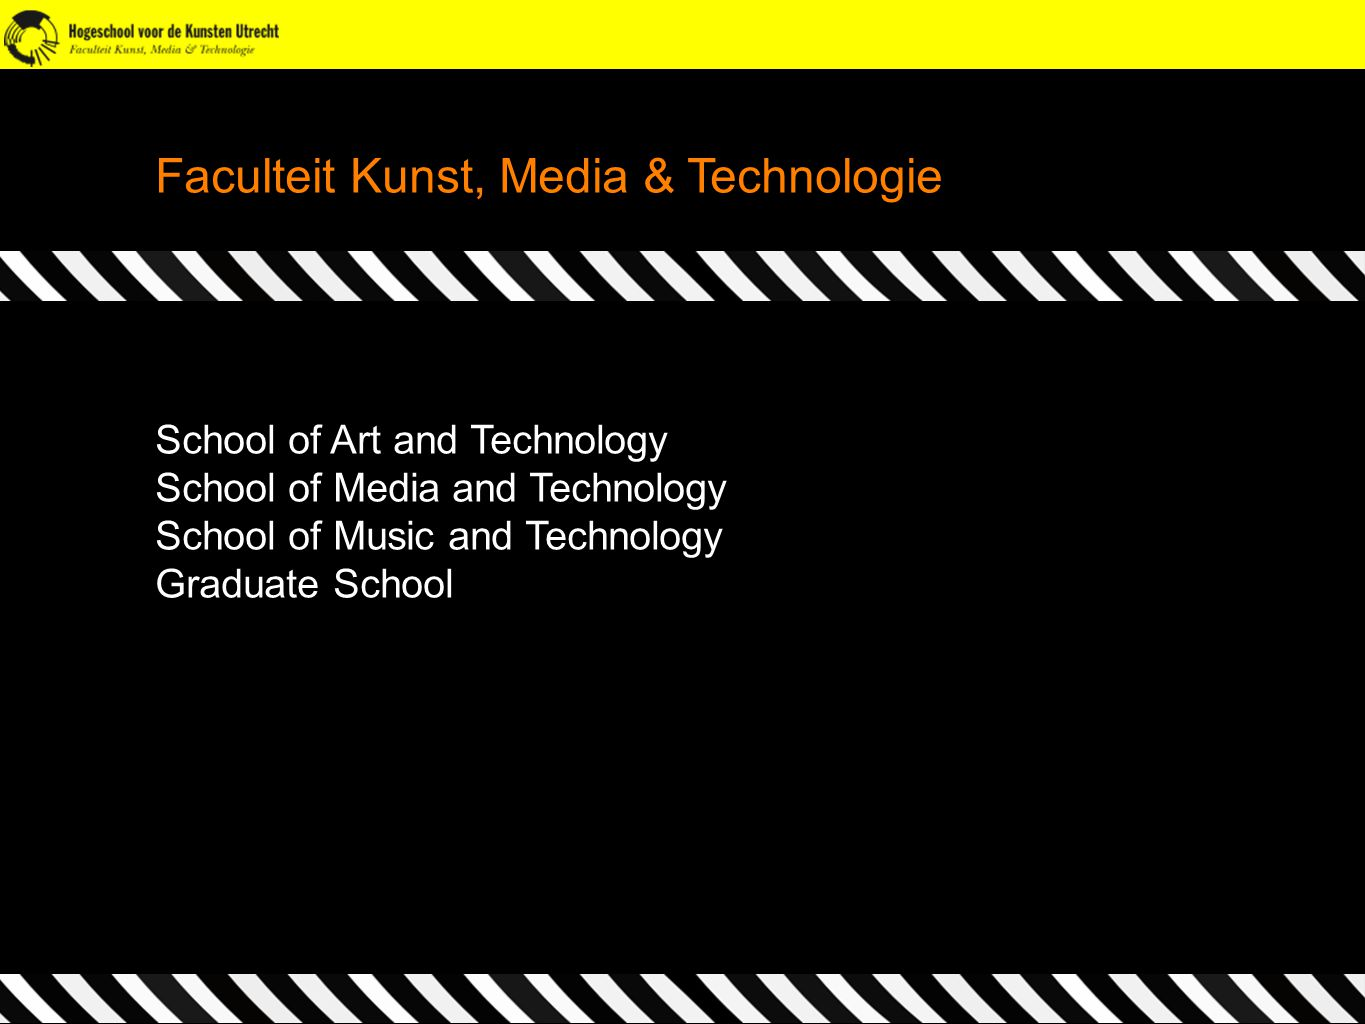 Faculteit Kunst, Media & Technologie